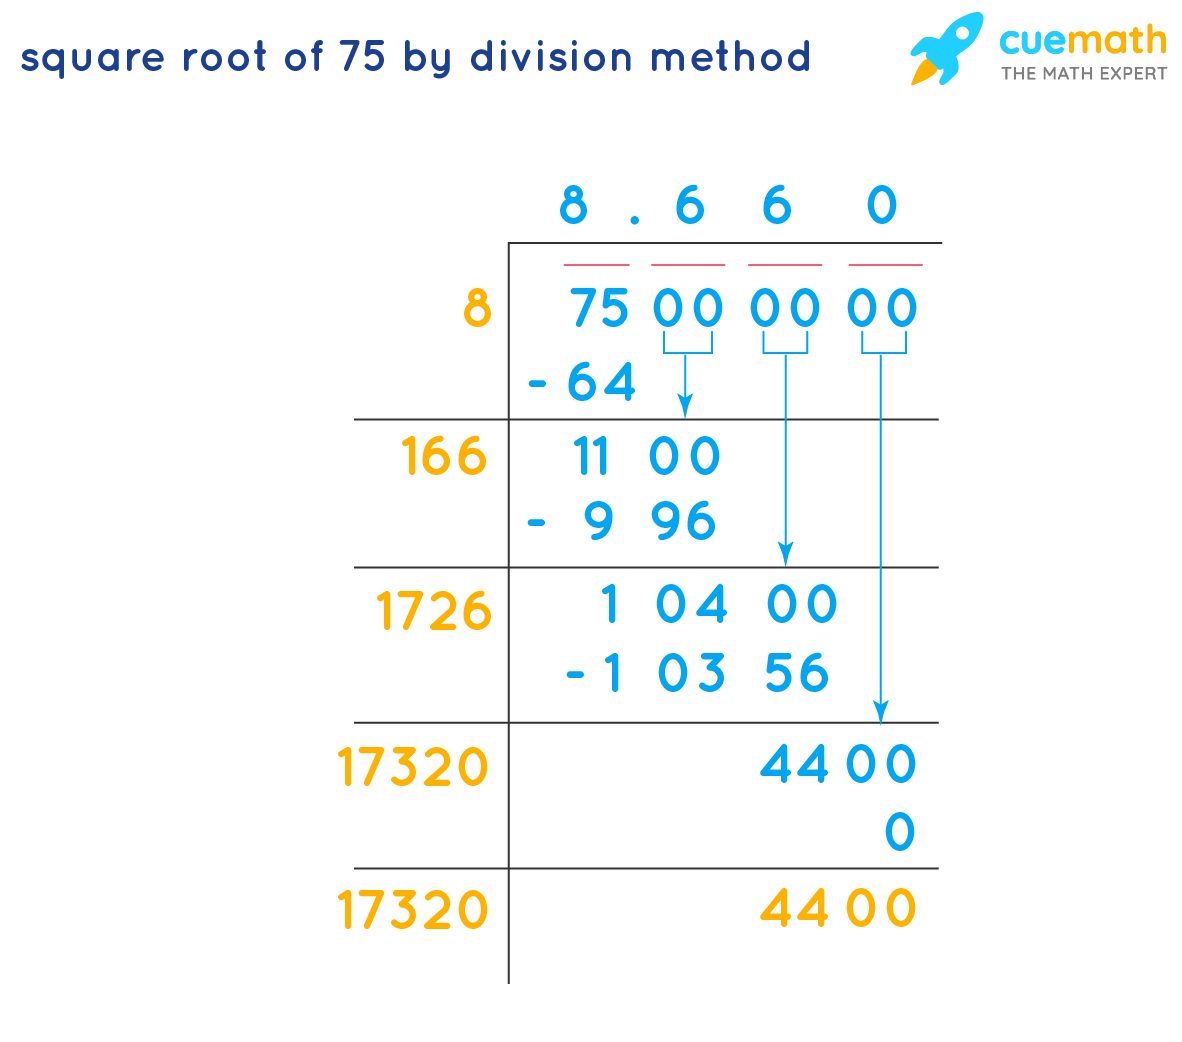 Square root of 75 by division method